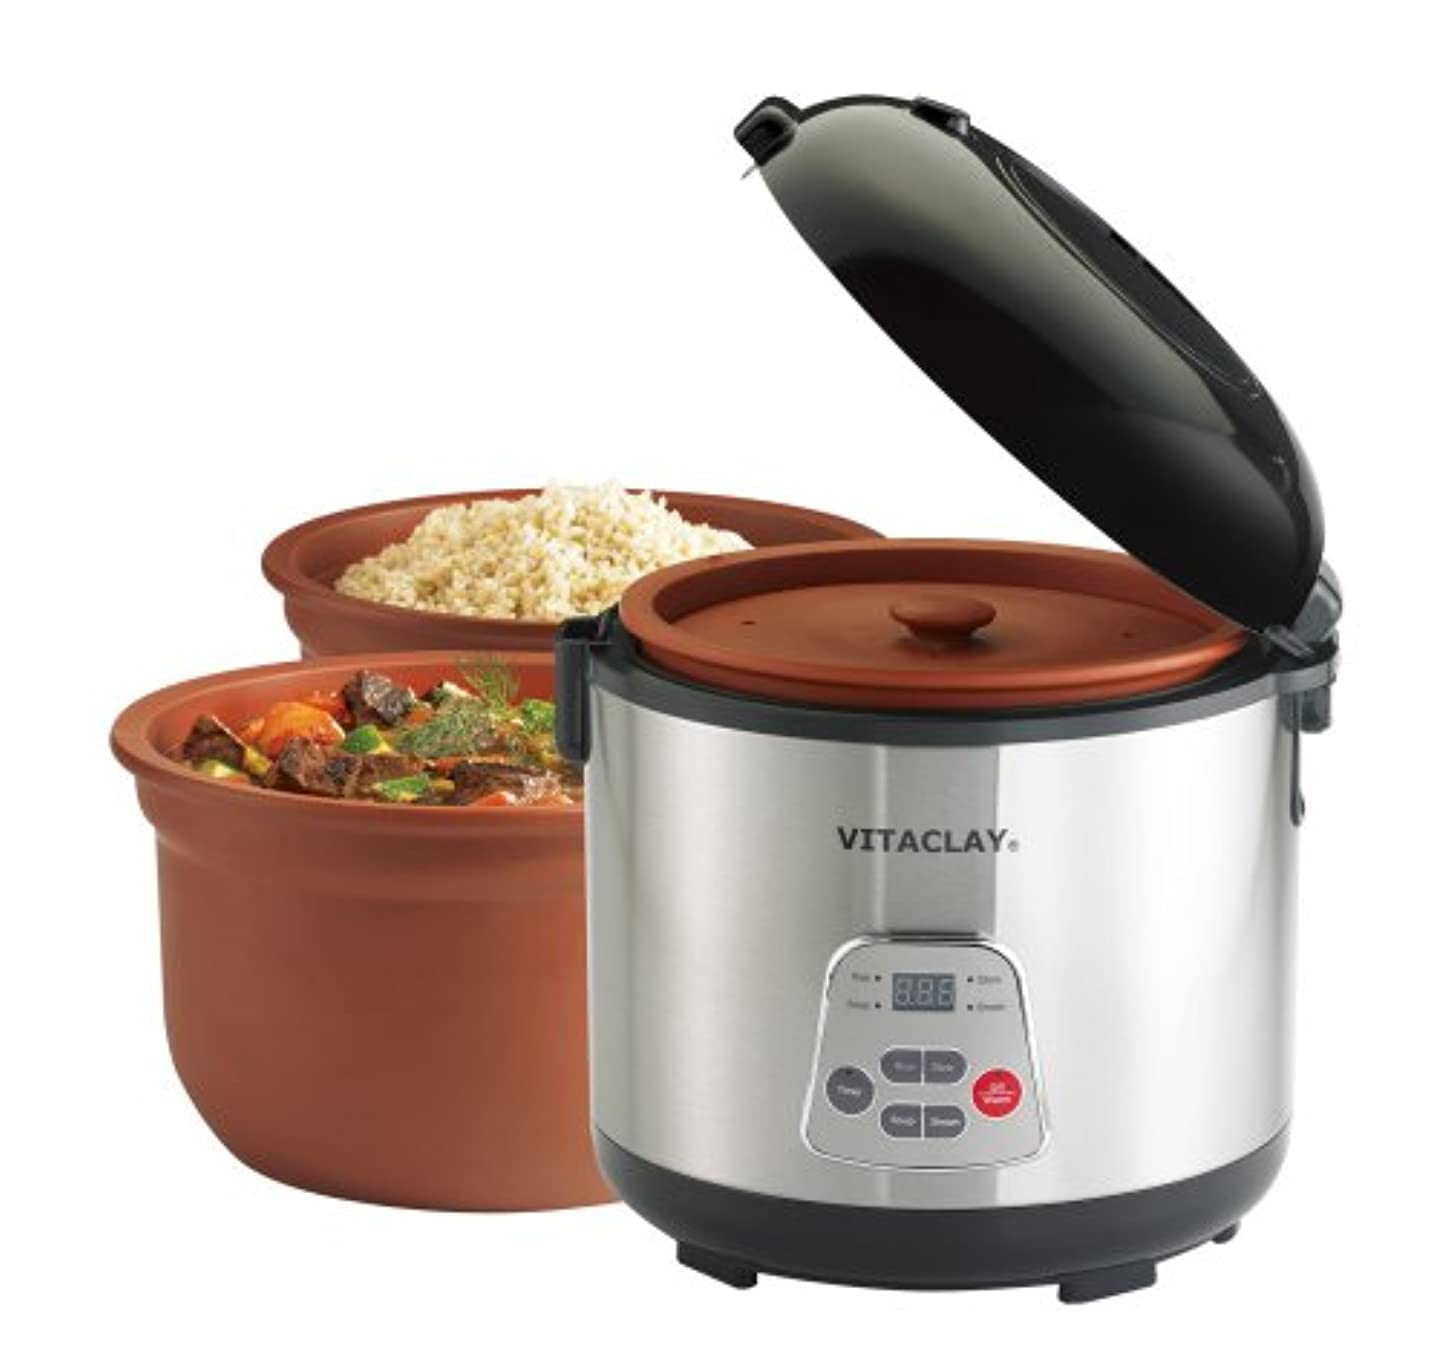 High-Fired VitaClay 2-in-1 Rice N Slow Cooker in Clay Pot ybkshv9293889